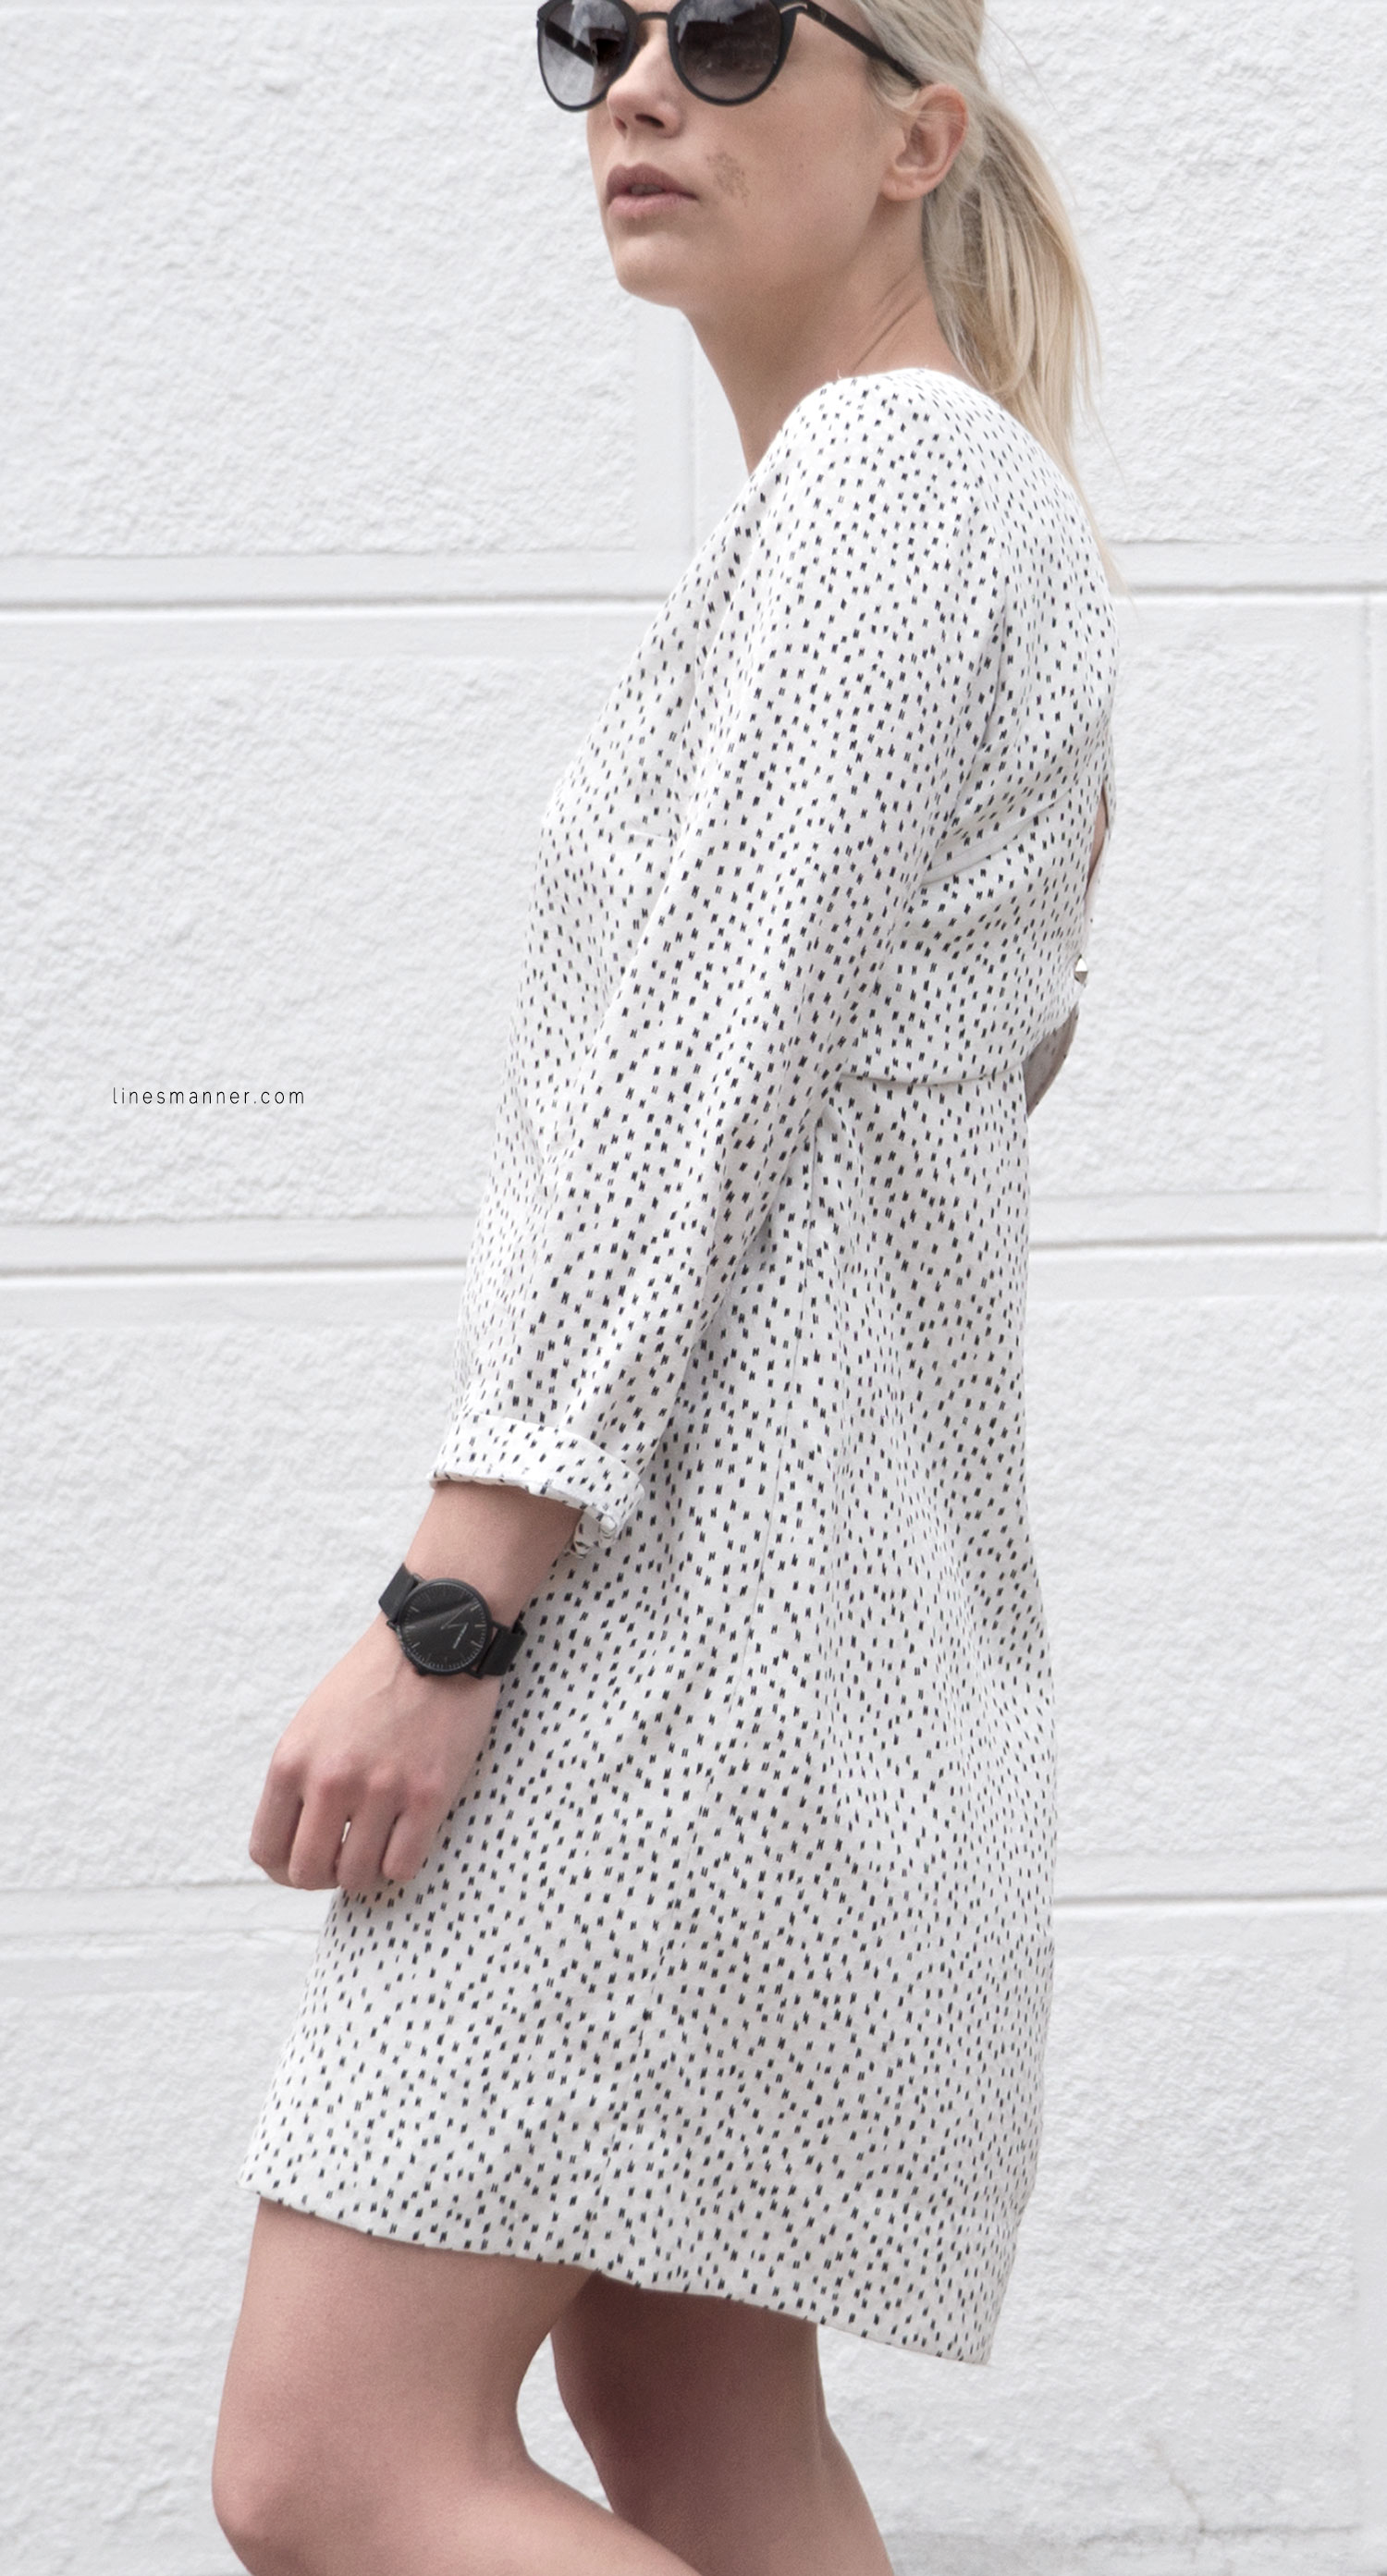 Lines-Manner-Minimal-Oldies-Dress-Sandro-Timeless-Design-Black_and_White-Details-Simplicity-Essential-Summer-Print-Quality-Wardrobe-7